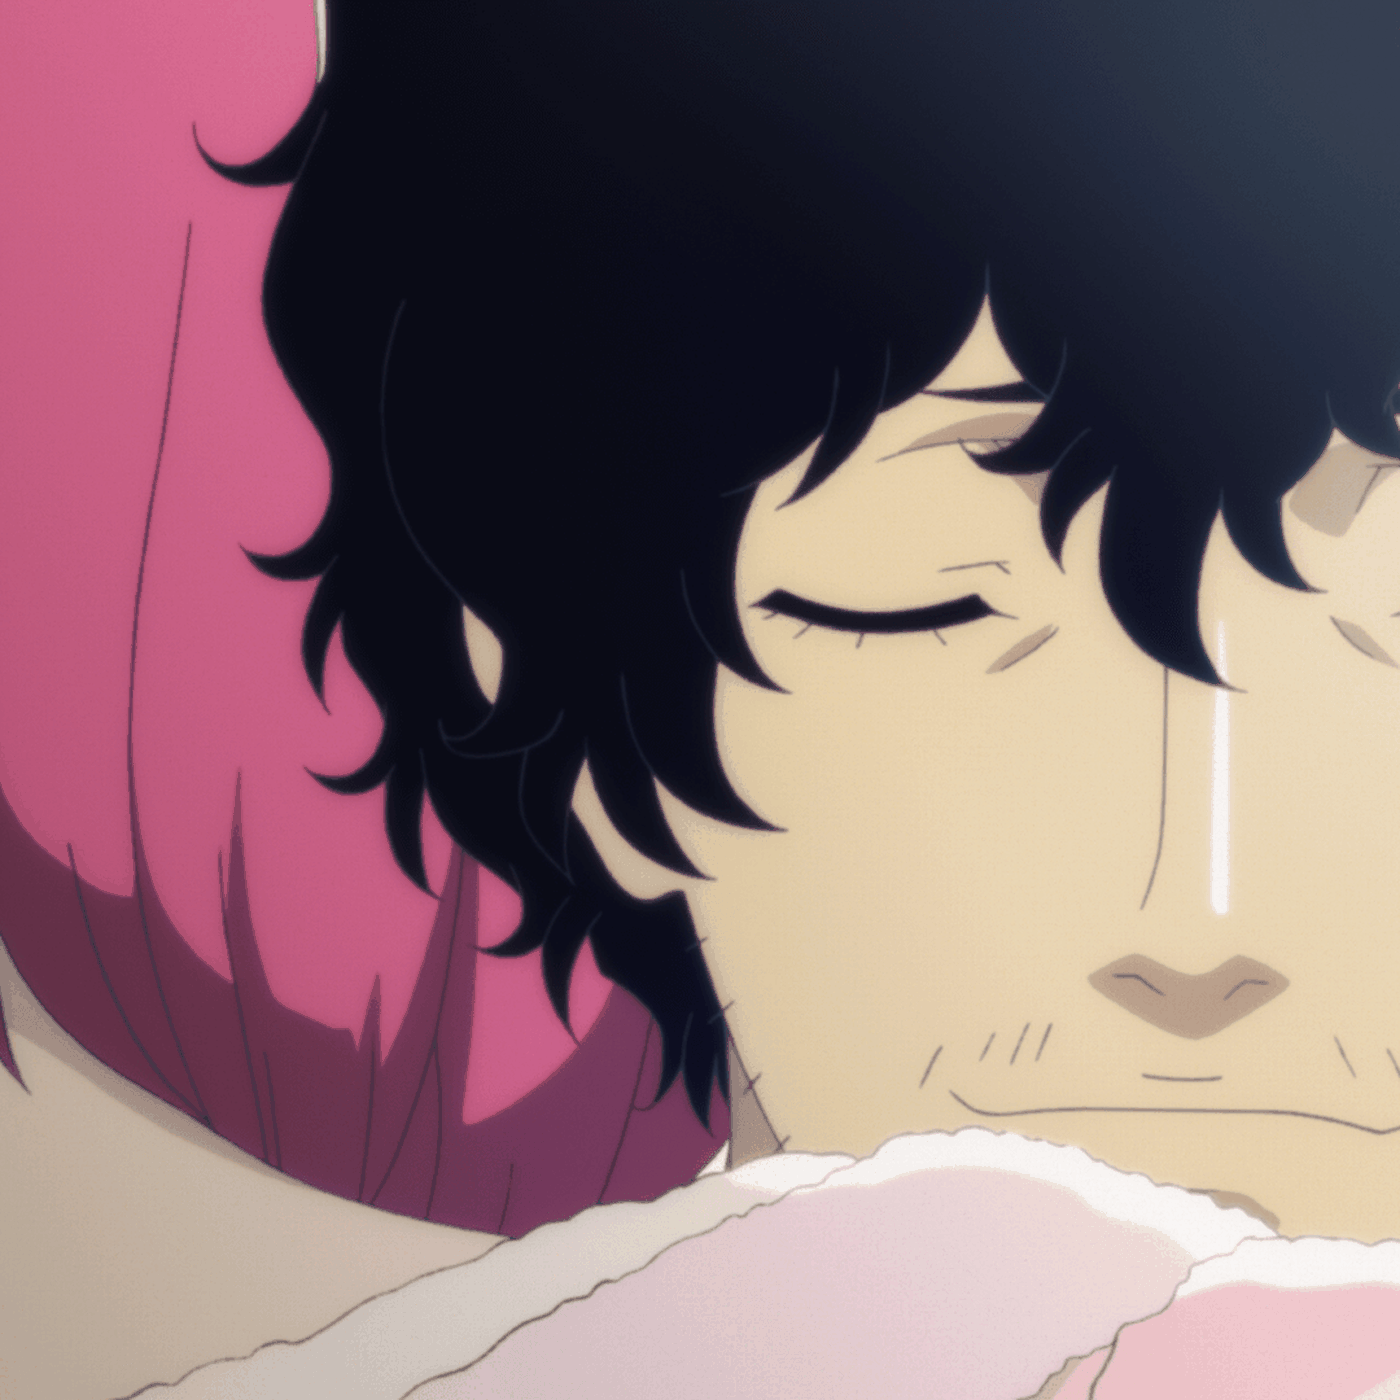 Catherine Full Body Review Still Insightful Still Troubling Polygon Full body (2019 video game). catherine full body review still